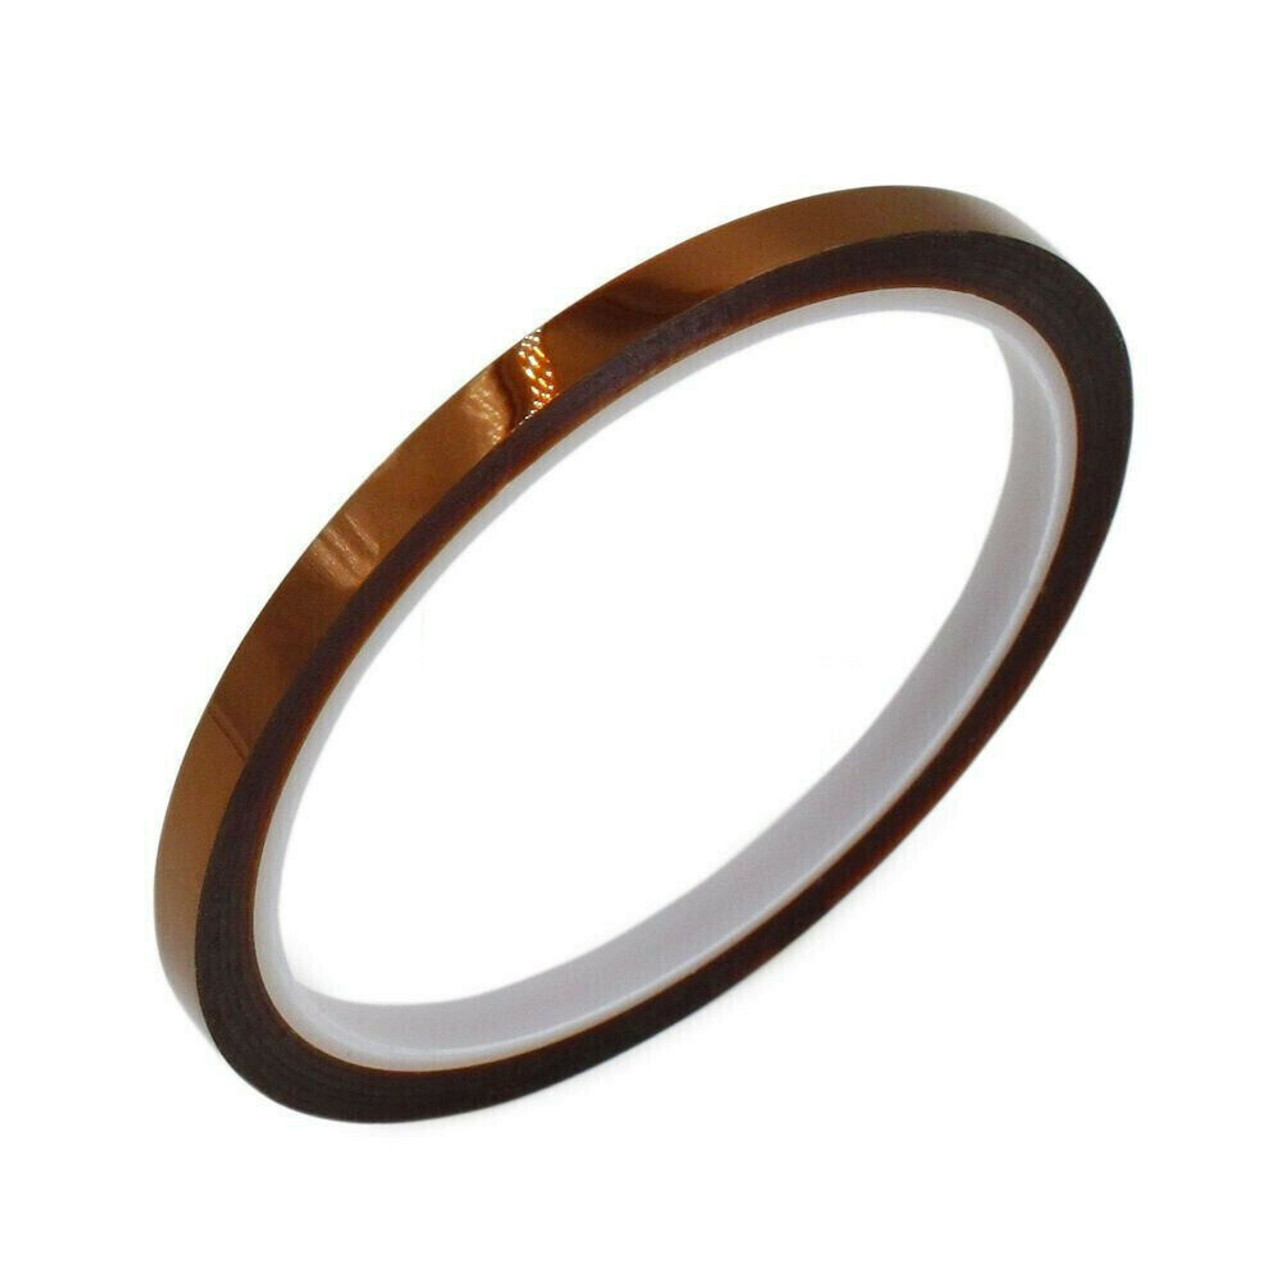 6mm 100ft Kapton Polyimide Tape Adhesive High Temperature Heat Resistant USA 33M